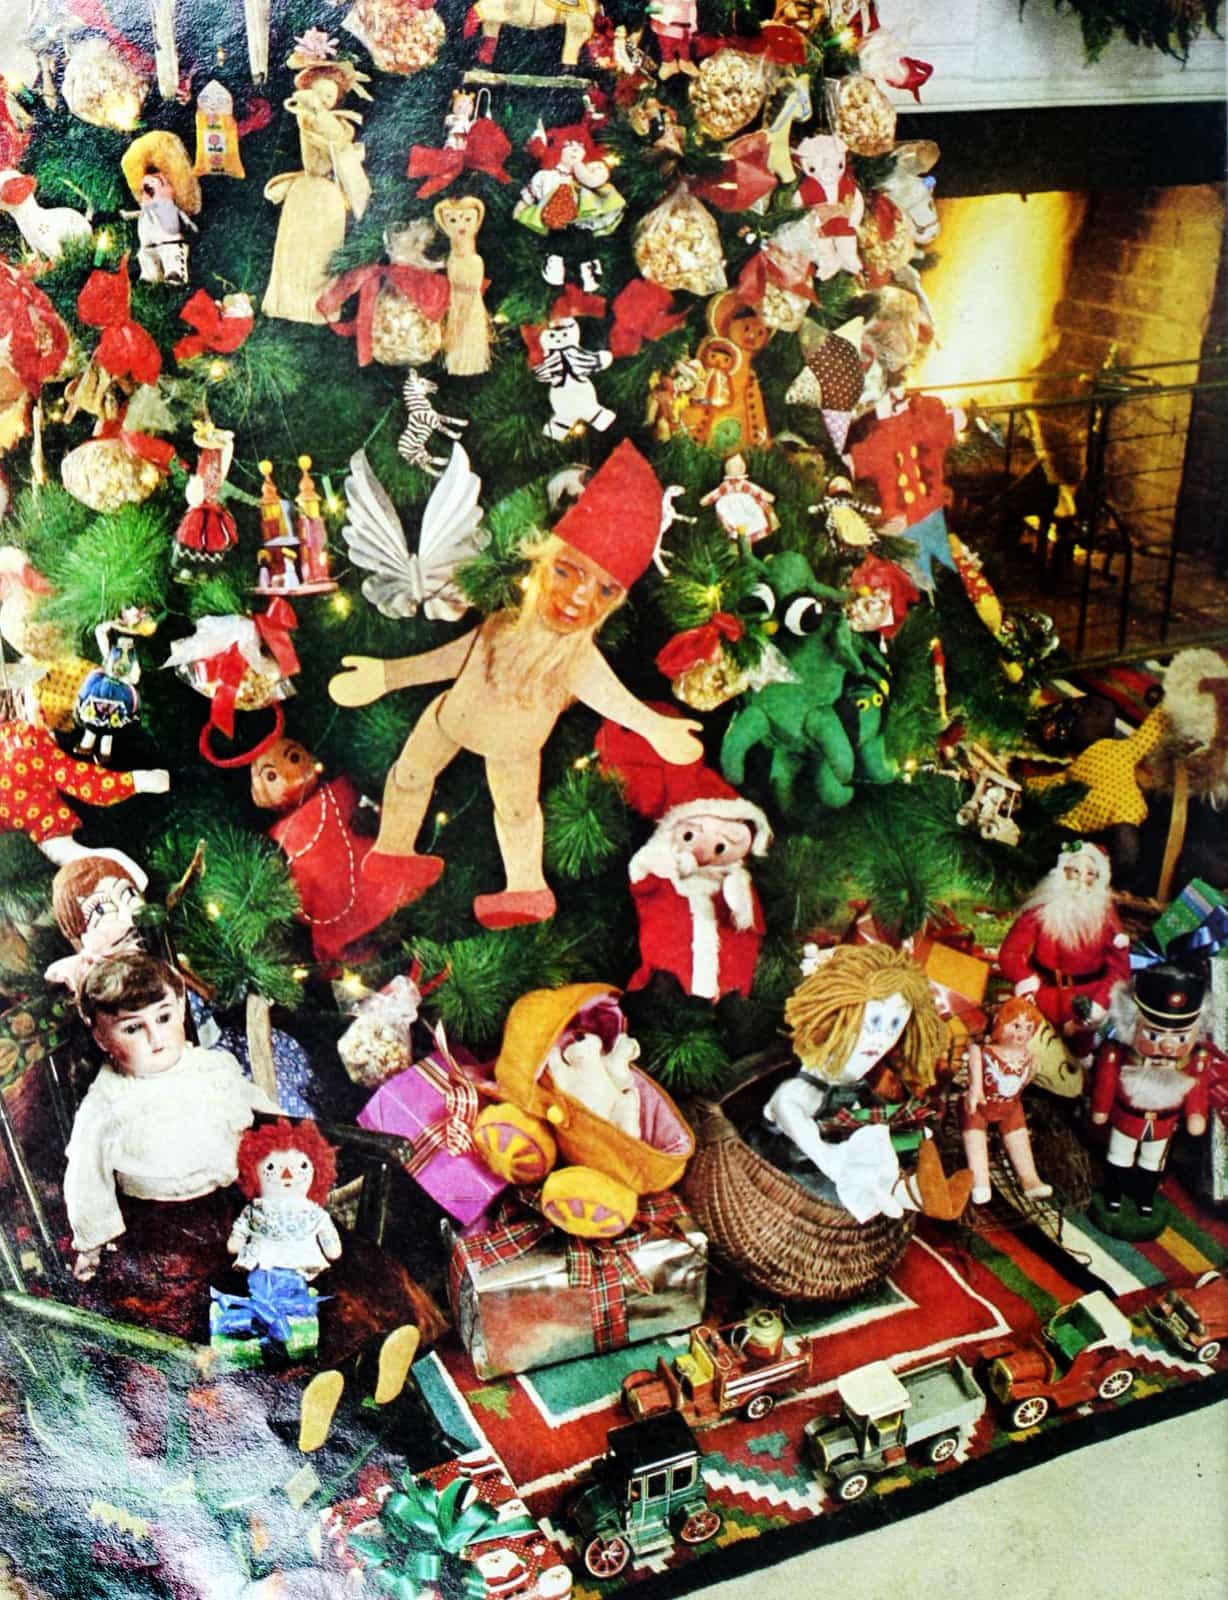 Vintage Christmas tree decorations from 1977 (3)